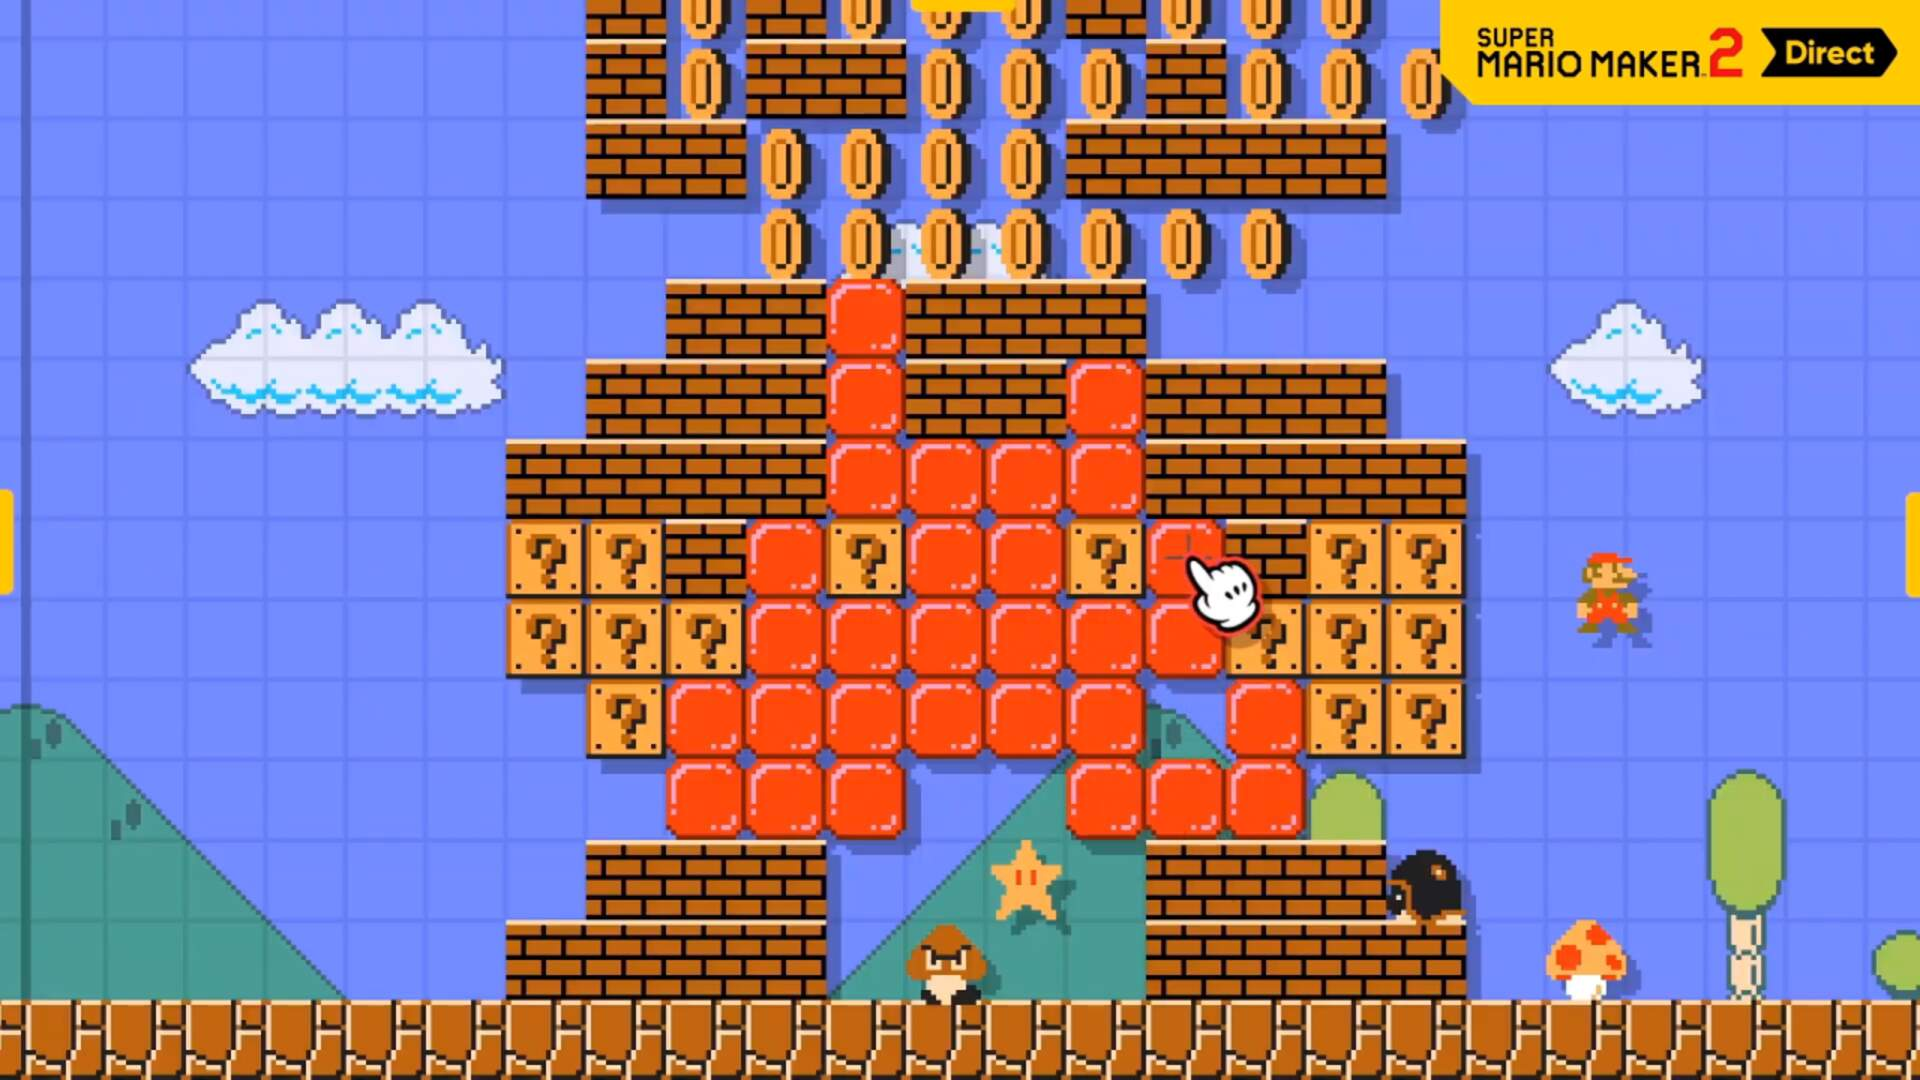 Super Mario Maker Fans Discover Secrets Hidden In Japanese Nintendo Page Not Revealed in the Direct